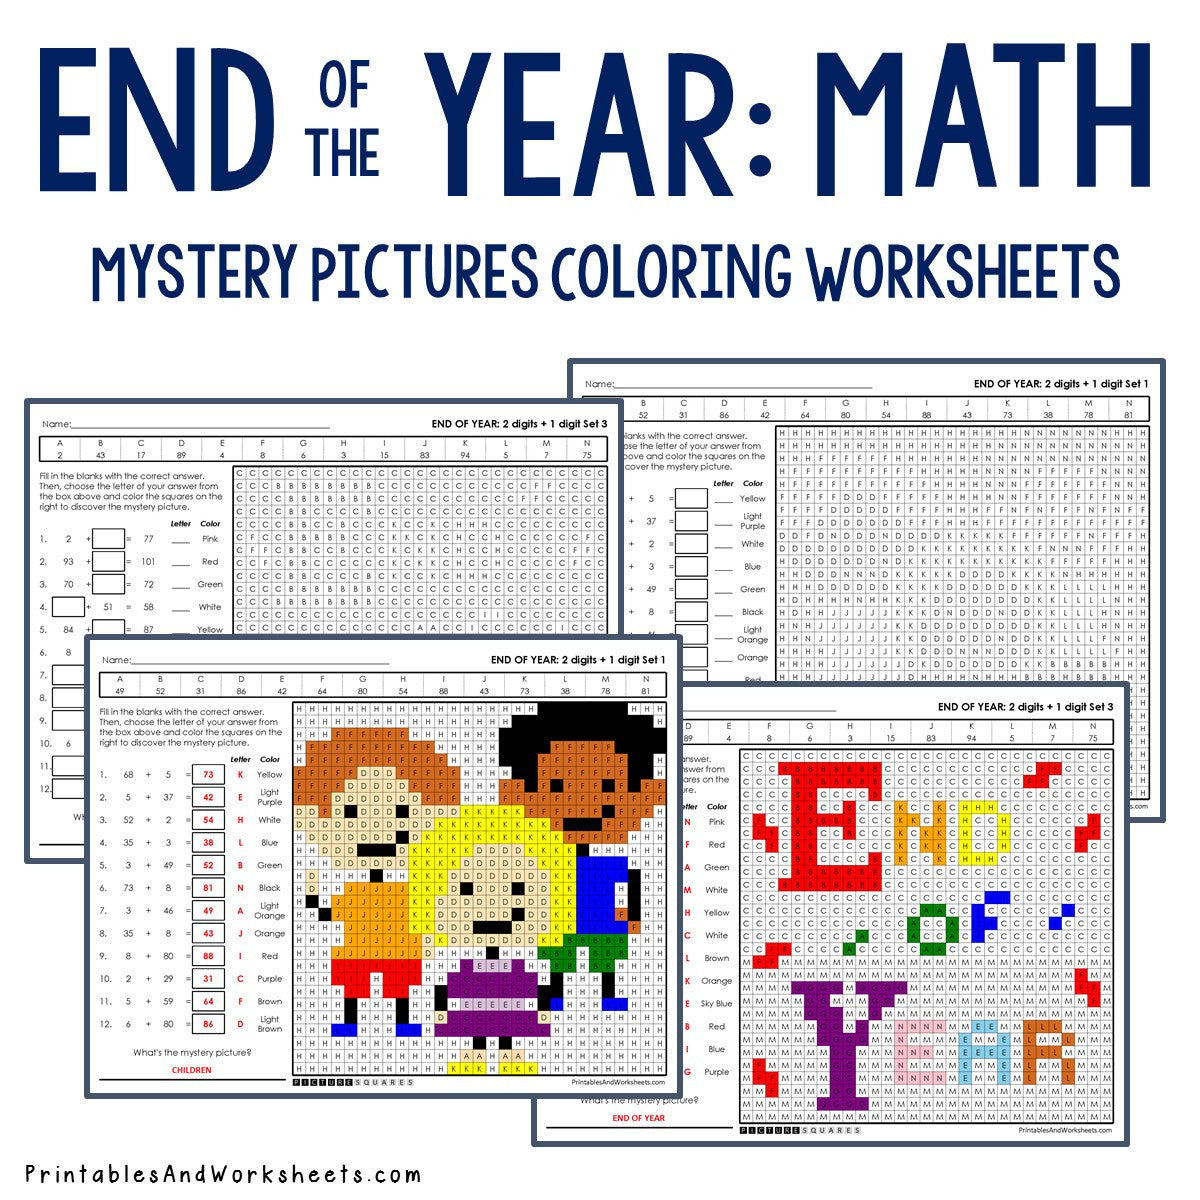 End of the Year Coloring Worksheets - Addition